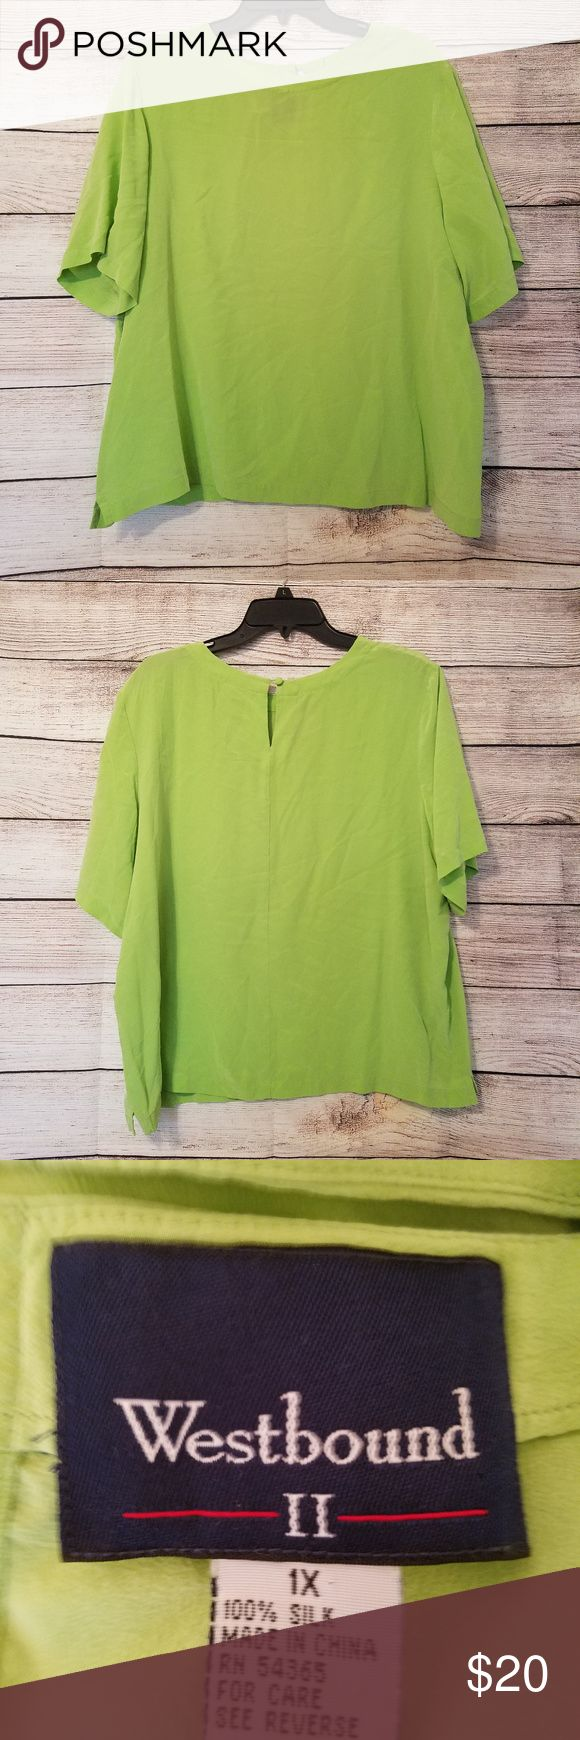 1X Green 100% Silk Short Sleeve Top Women's Plus Size 1X Westbound Green Short Sleeve 100% Silk Top  This item is pre-owned and in good condition.  ***RUNS SHORT IN THE TORSO!***  Please know your measurements before bidding!  Chest measures: 48 inches relaxed Length: ~24 inches from top of shoulder to hem.  Comes from a non smoking, pet friendly home! Westbound Tops